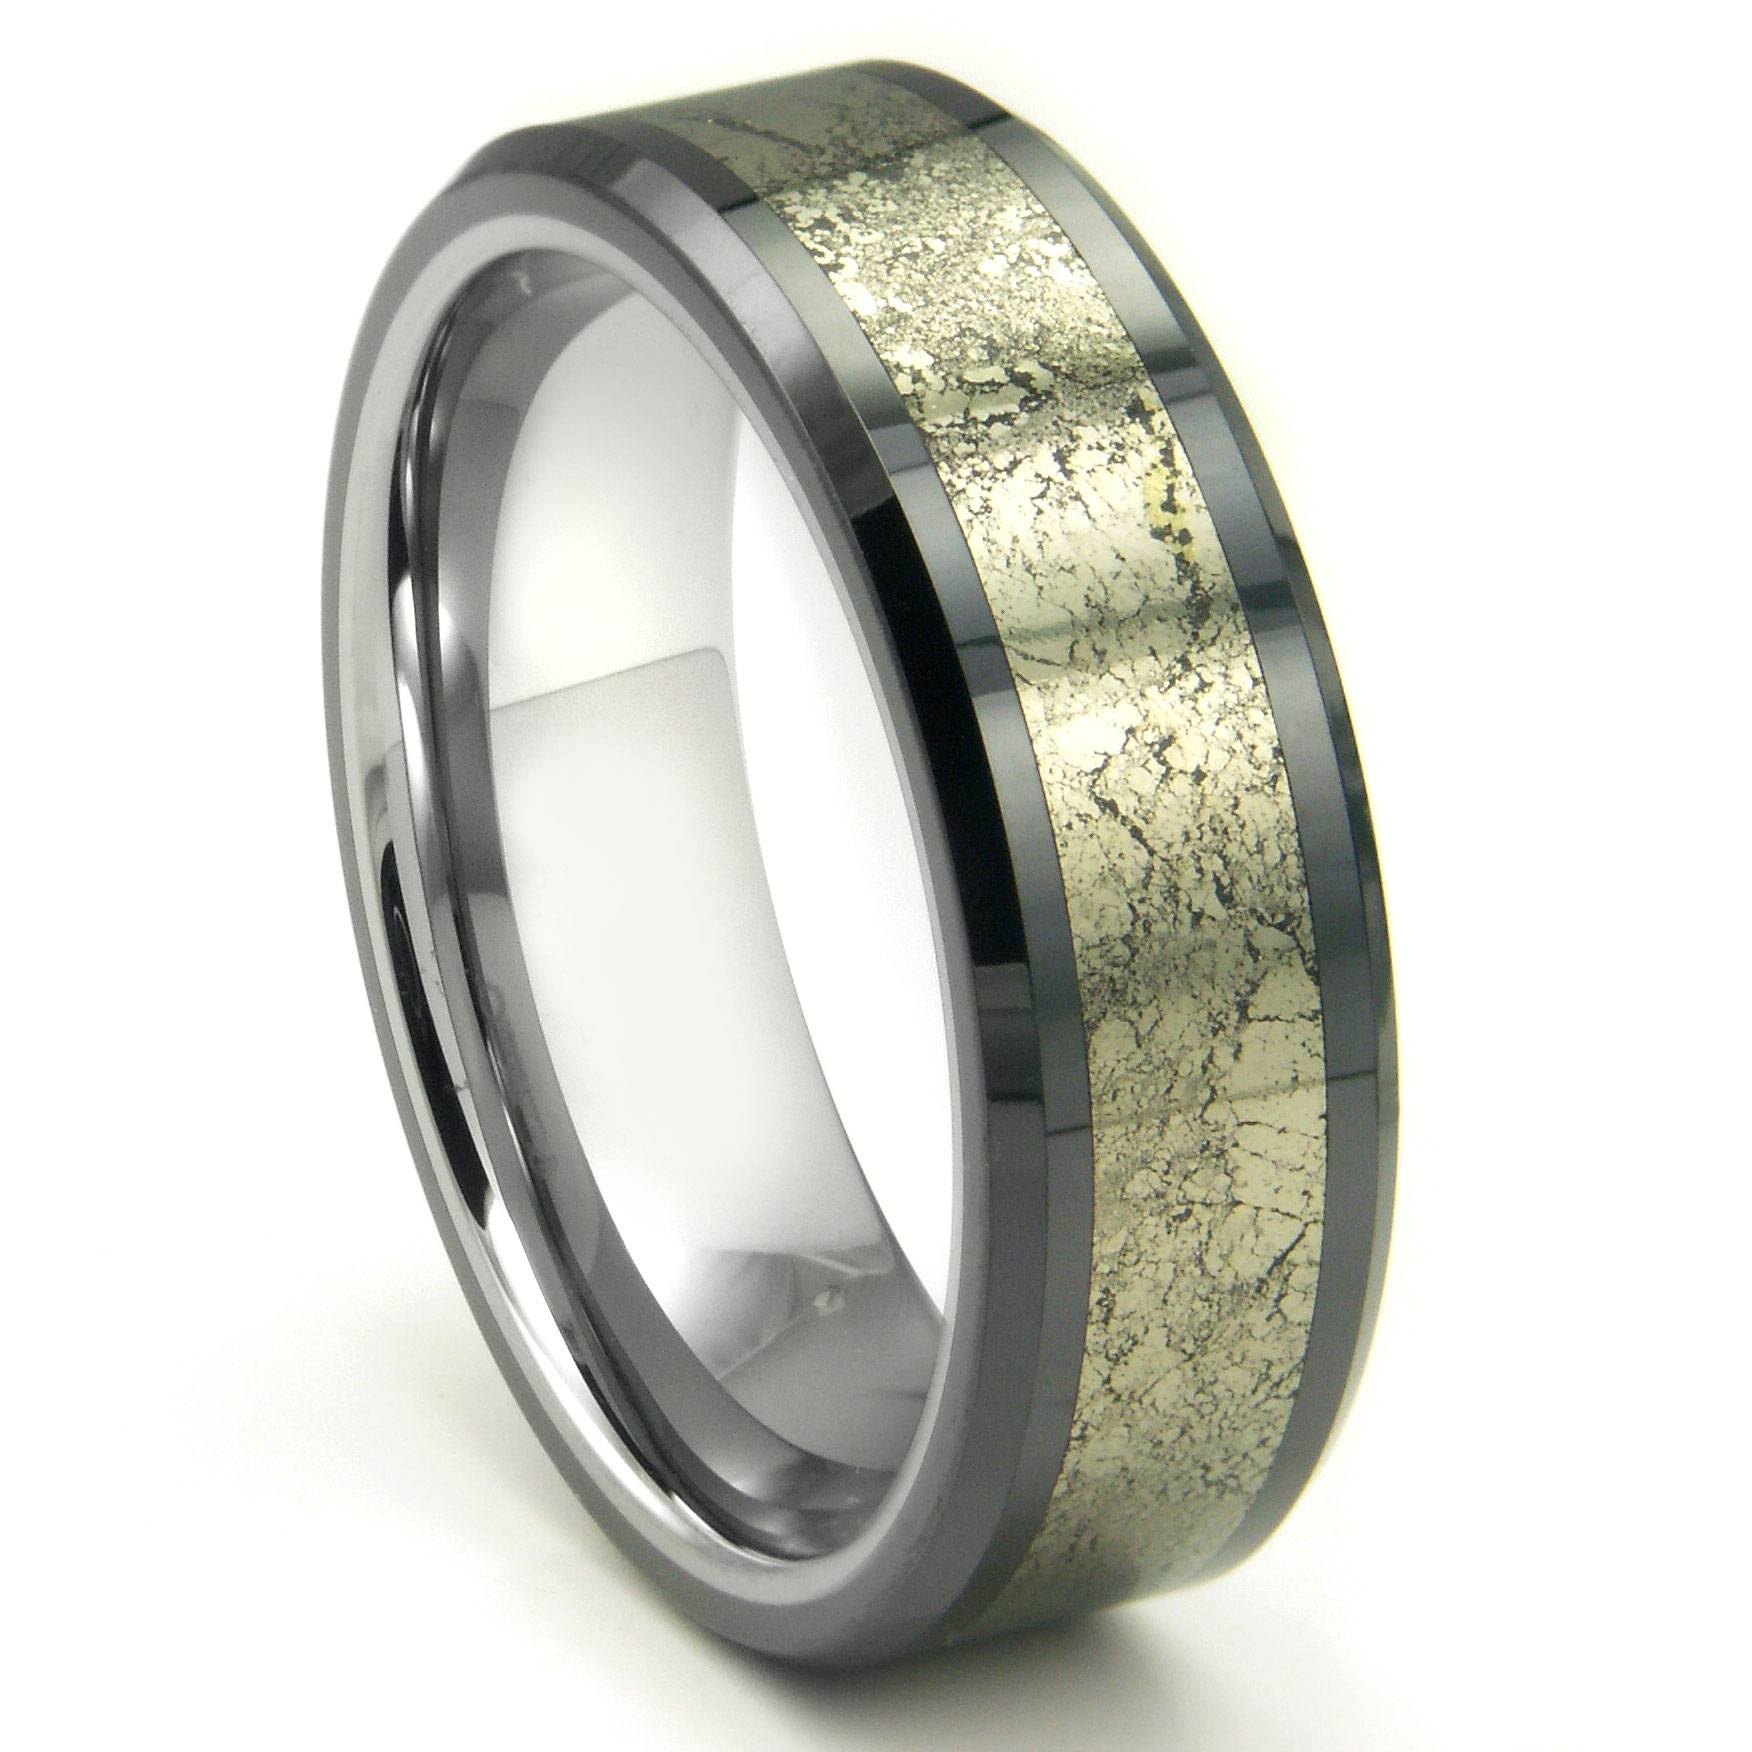 Mens Tungsten Rings & Wedding Bands – Titanium Kay Intended For Strongest Metal Wedding Bands (View 7 of 15)